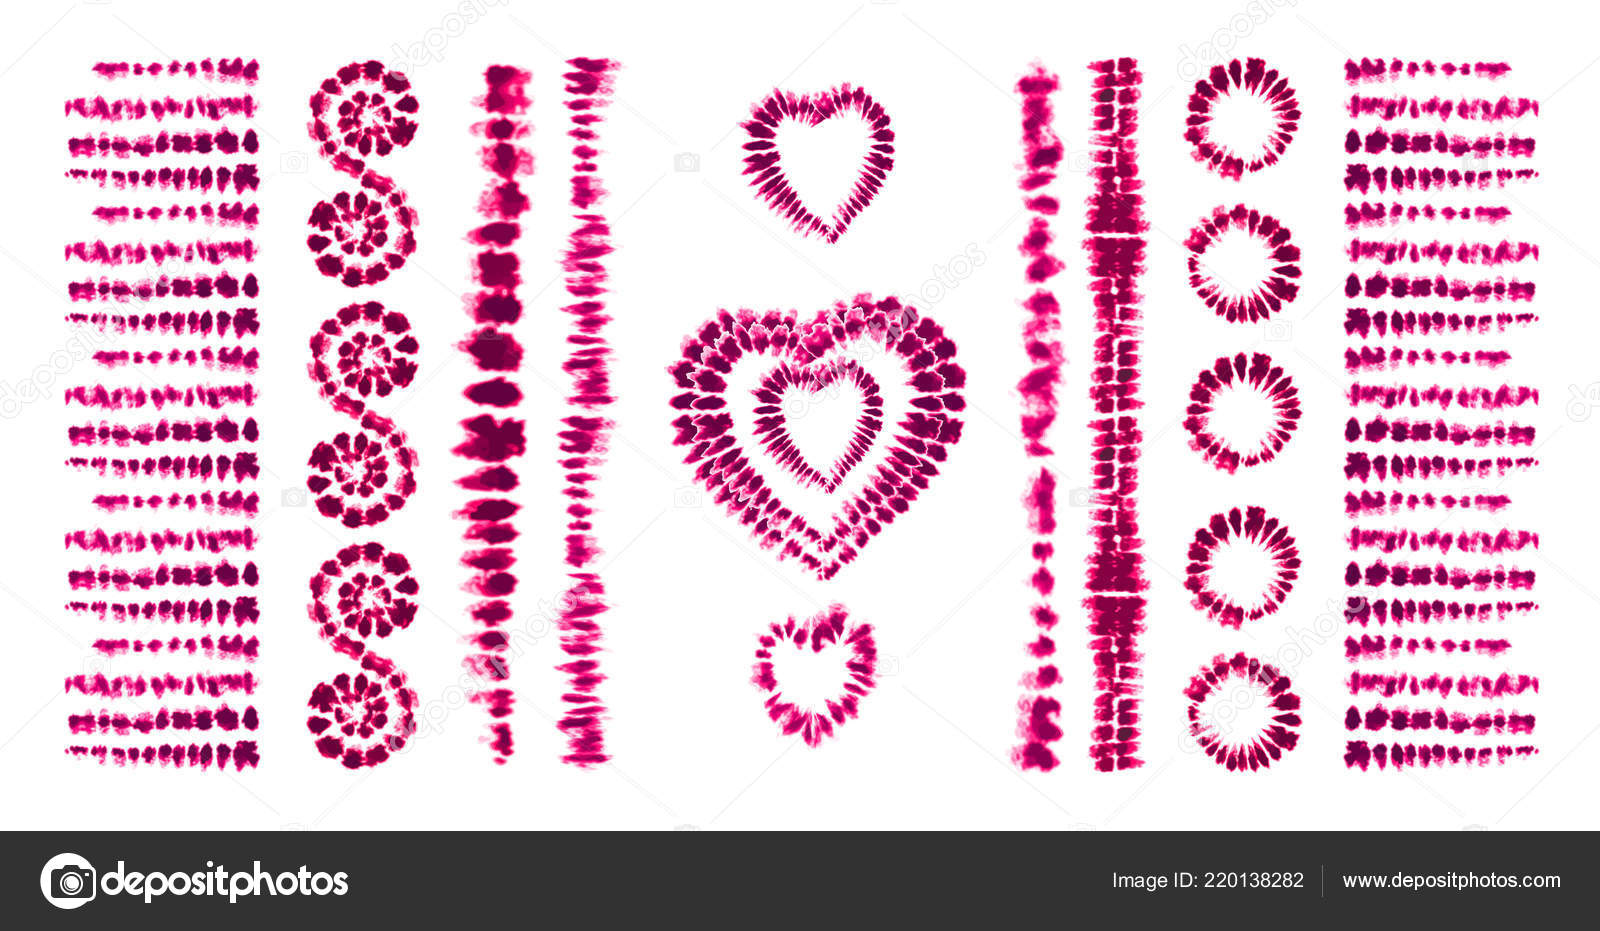 Red heart tie dye  Valentines day  Art brushes  Print in